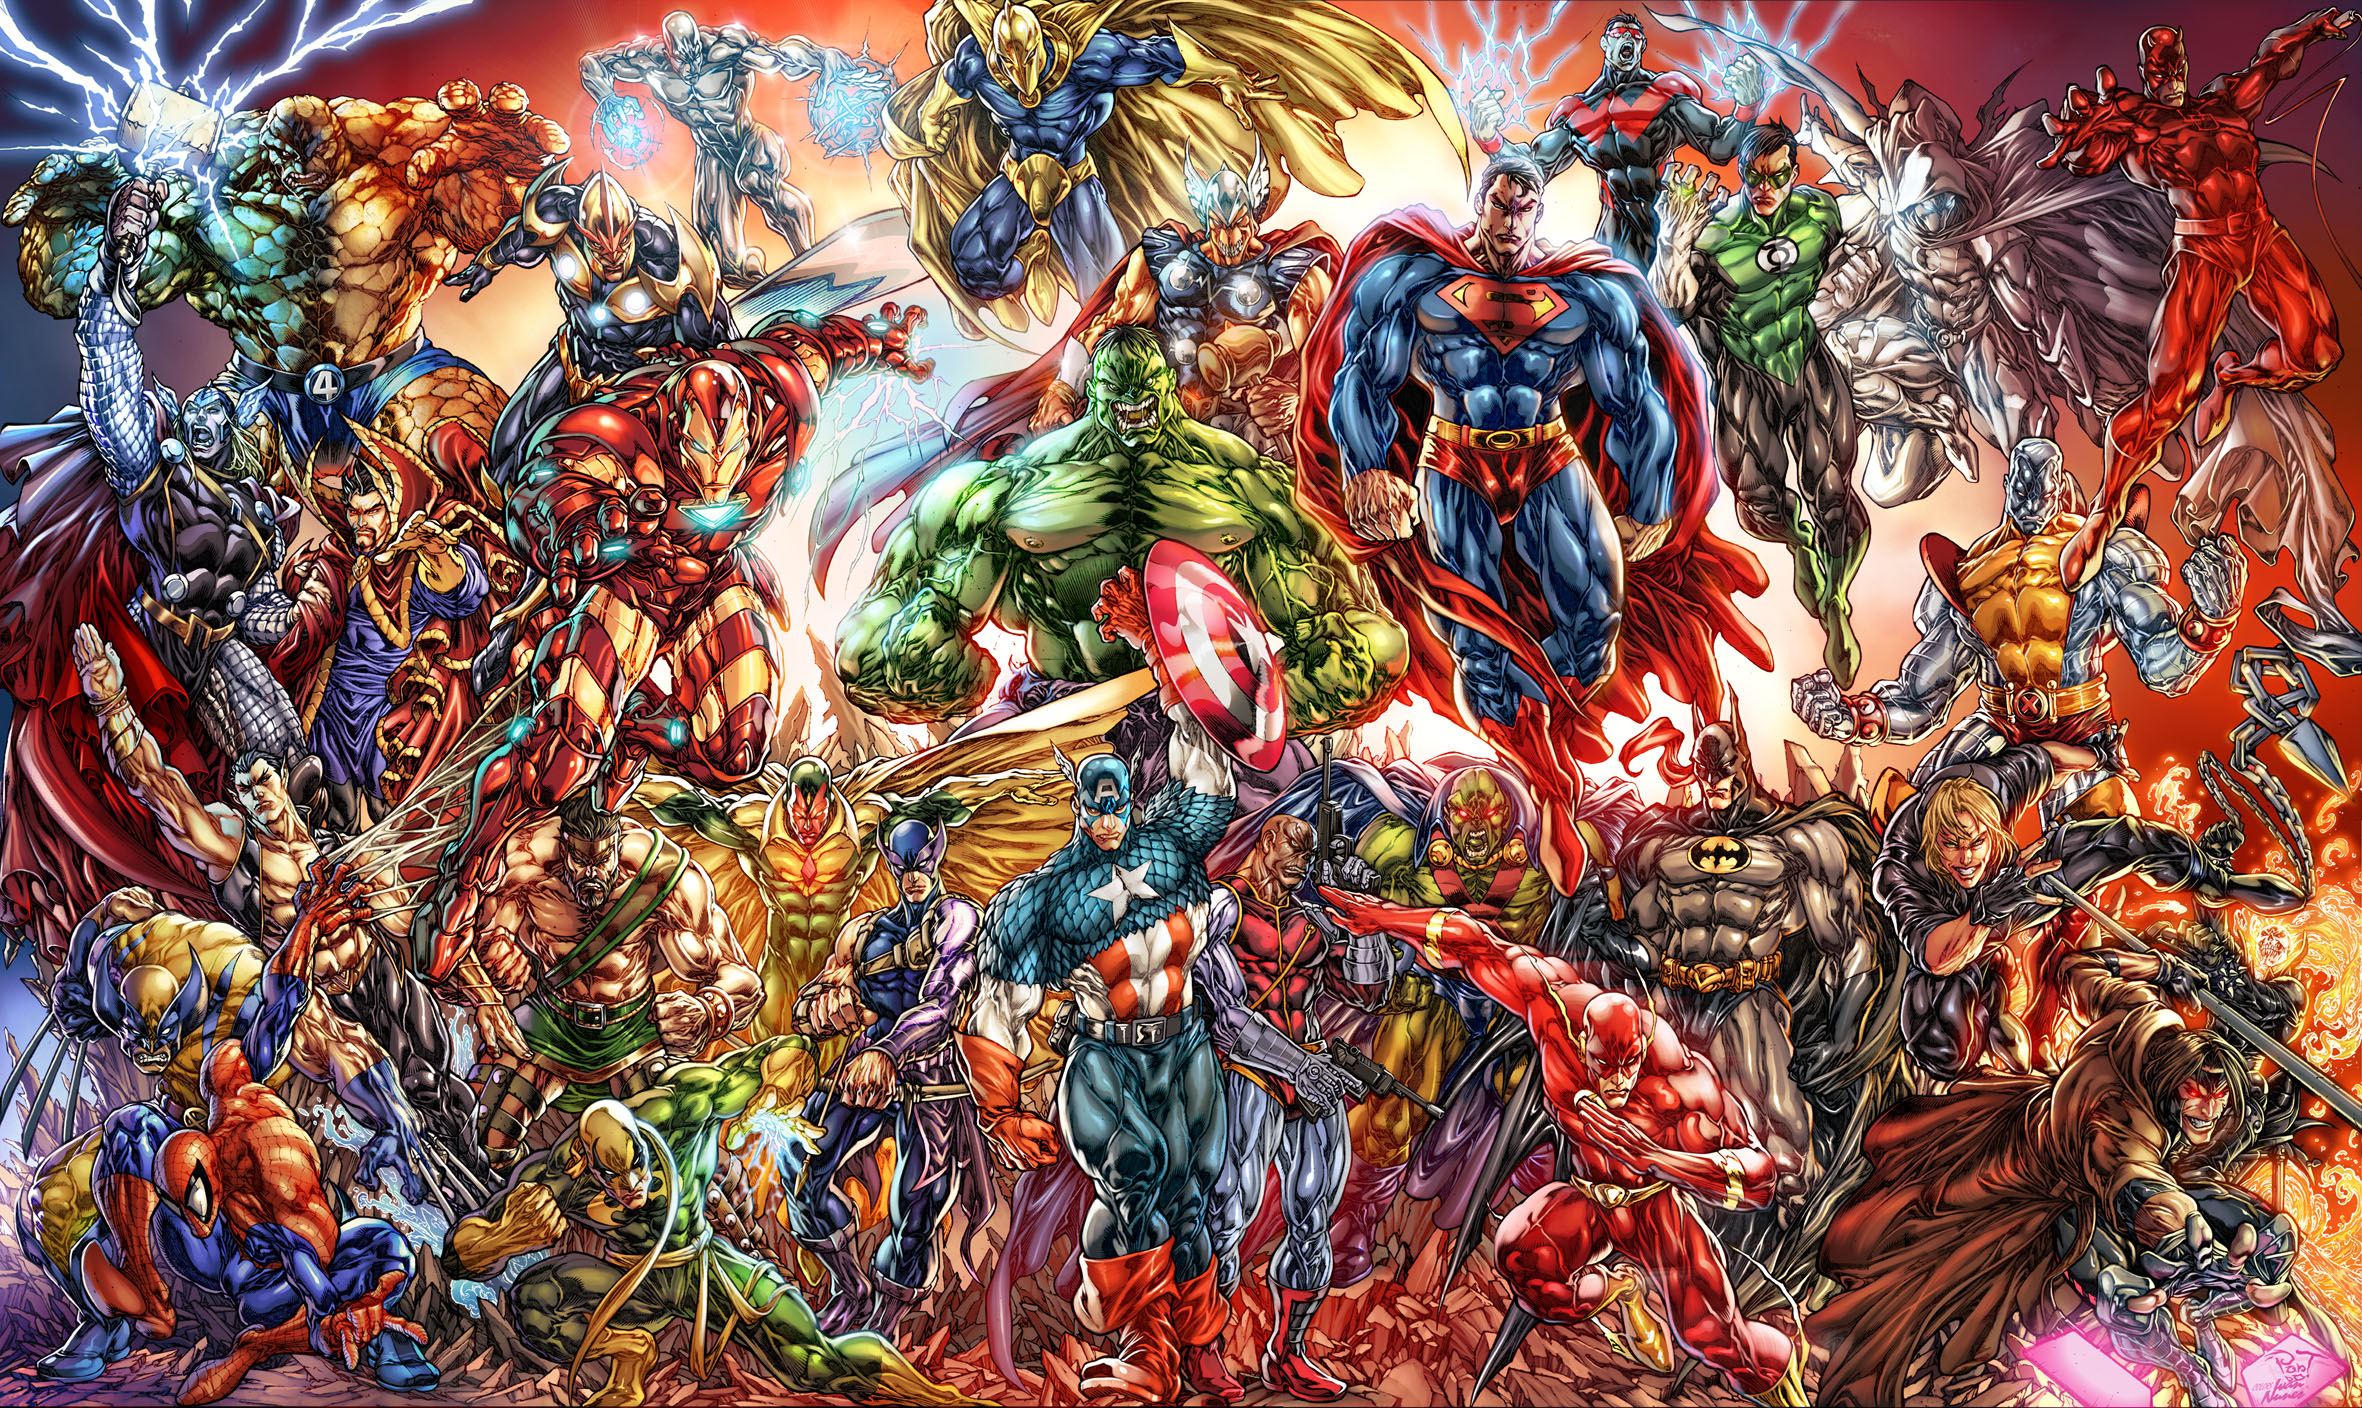 245 Marvel HD Wallpapers Backgrounds 2362x1408